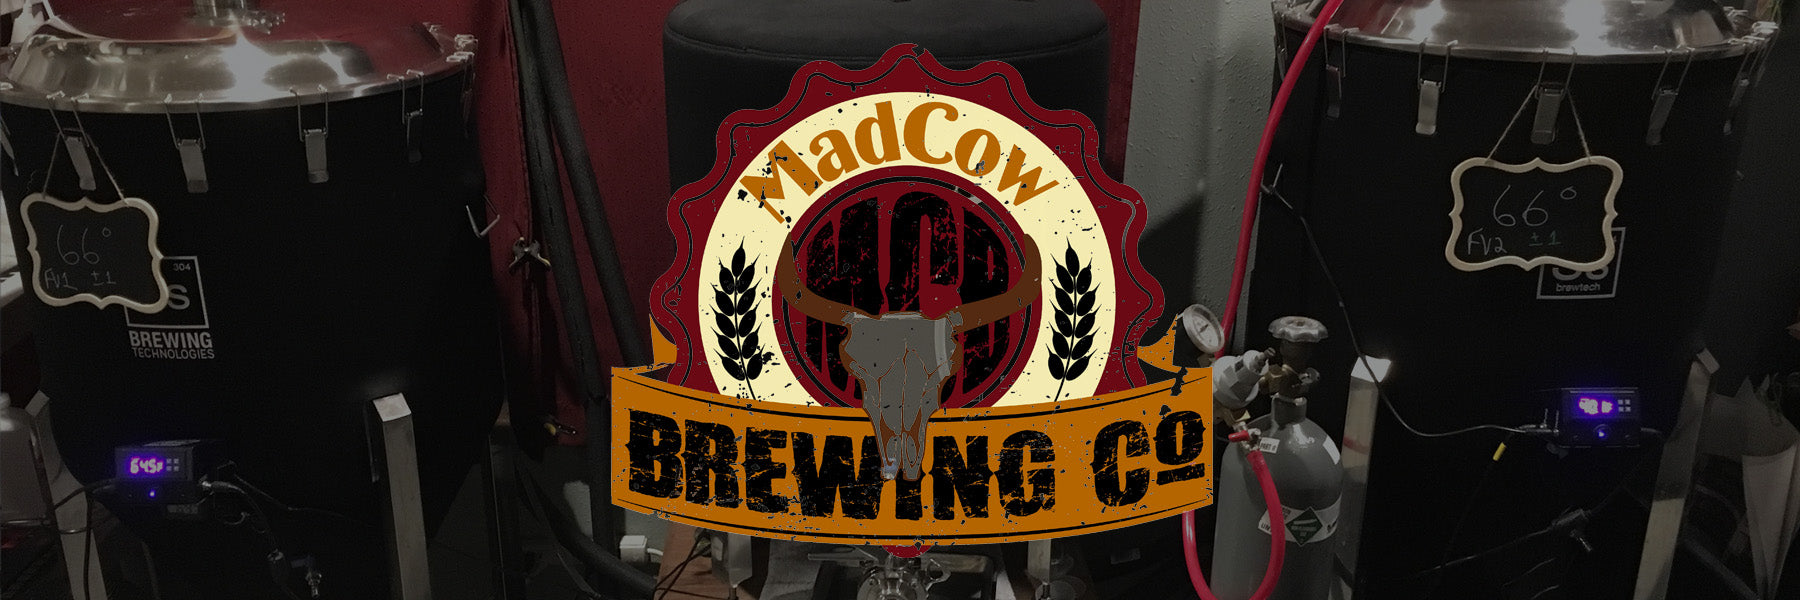 MadCow Brewing Co. | Portland, Oregon